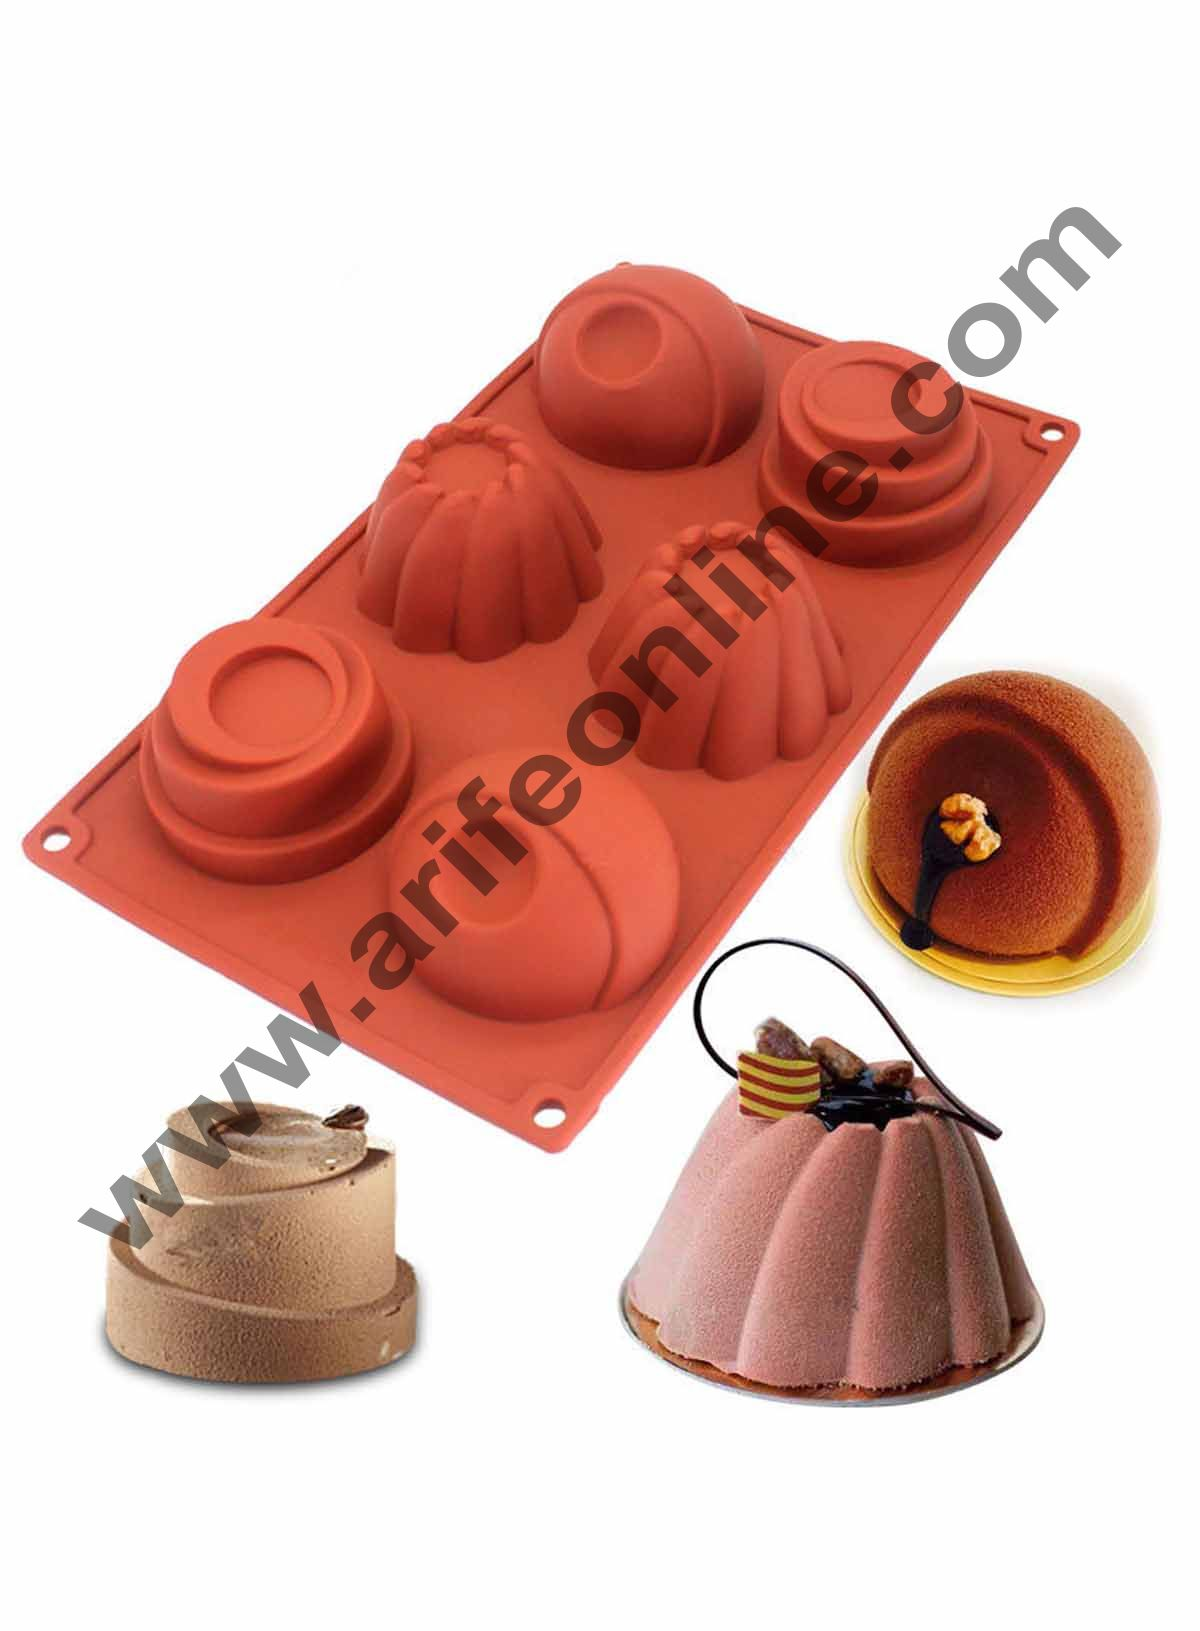 Cake Decor 6 in 1 Silicon Bakeware Mix Design Cupcake Moulds Muffin Mould